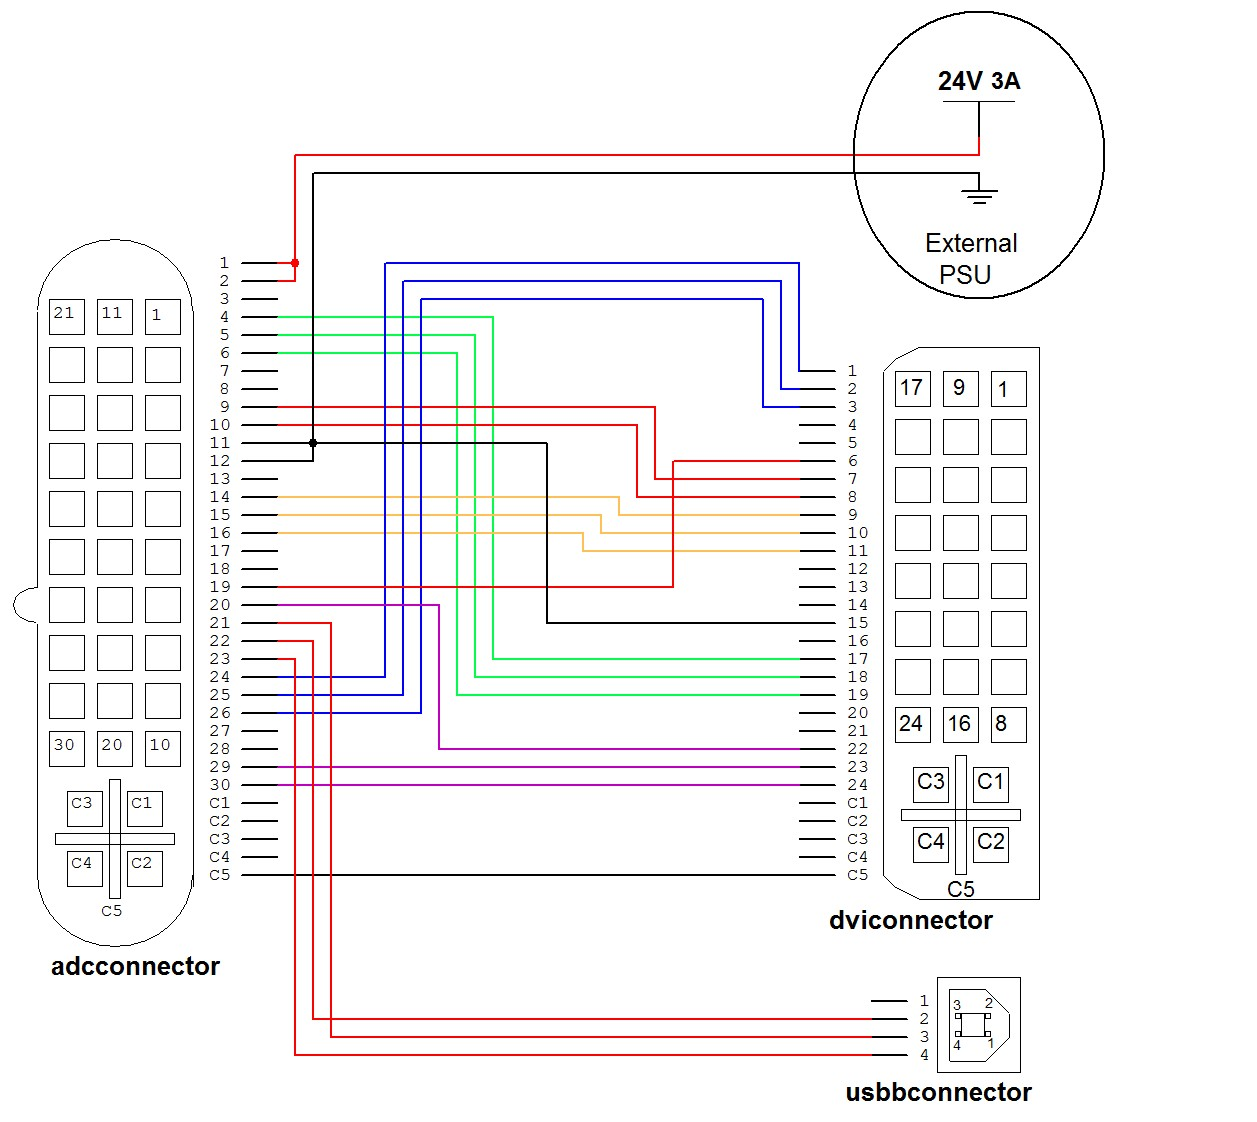 hdmi cable wiring diagram hdmi to vga cable pinout diagram hdmi to rh cardsbox co DVI to VGA Pinout DVI to VGA Adapter Pinout